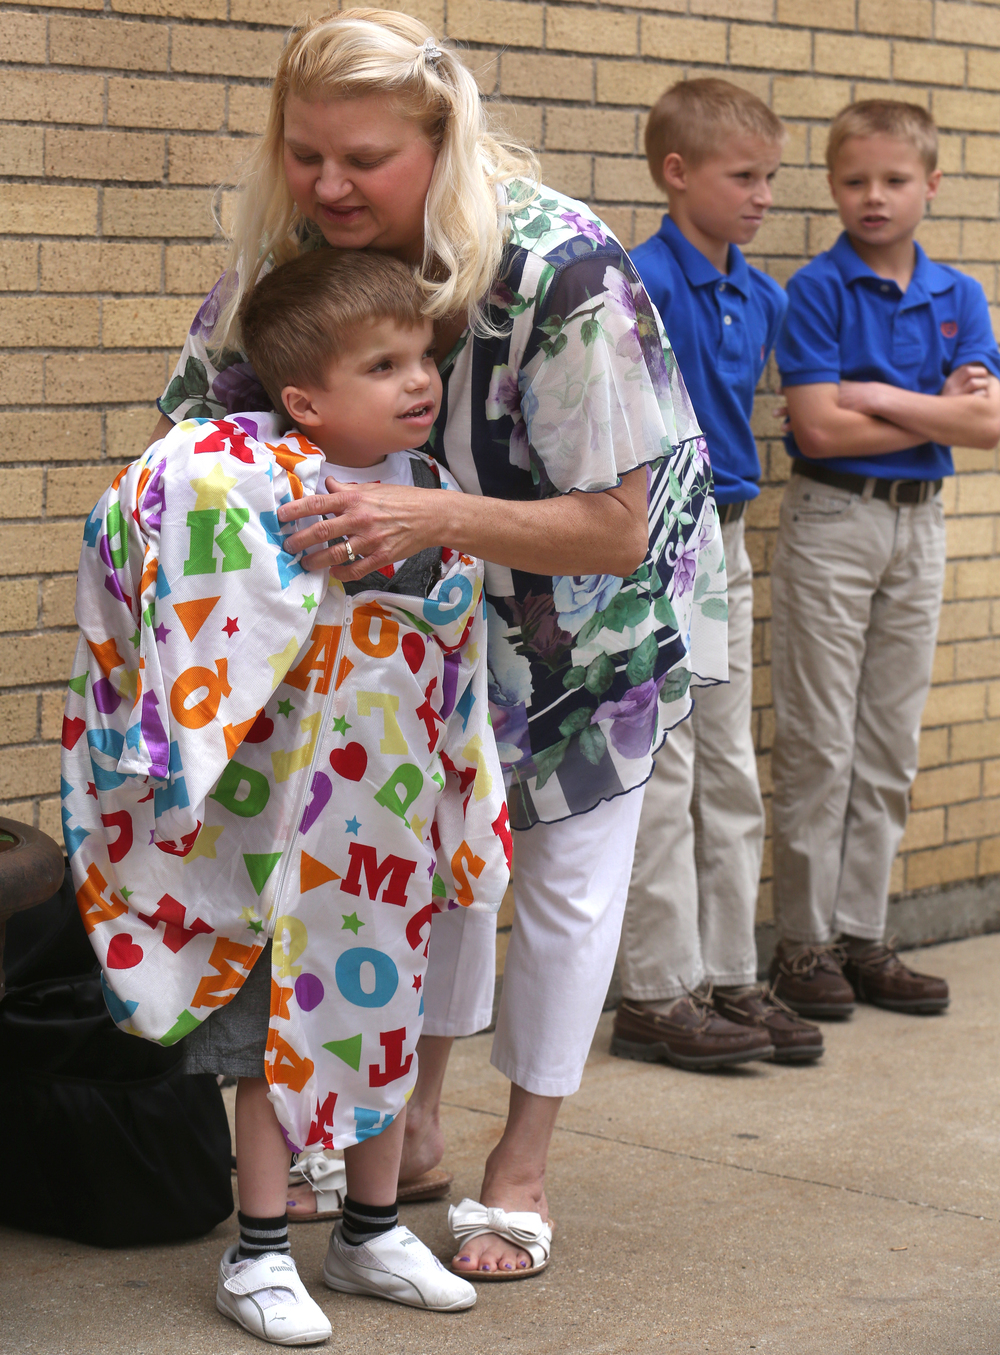 Deanna Planitz puts a graduation gown on her son Jordan outside the school gym Sunday afternoon while Jordan's older brothers Joshua and Jeremy Planitz wait at right. David Spencer/The State Journal-Register